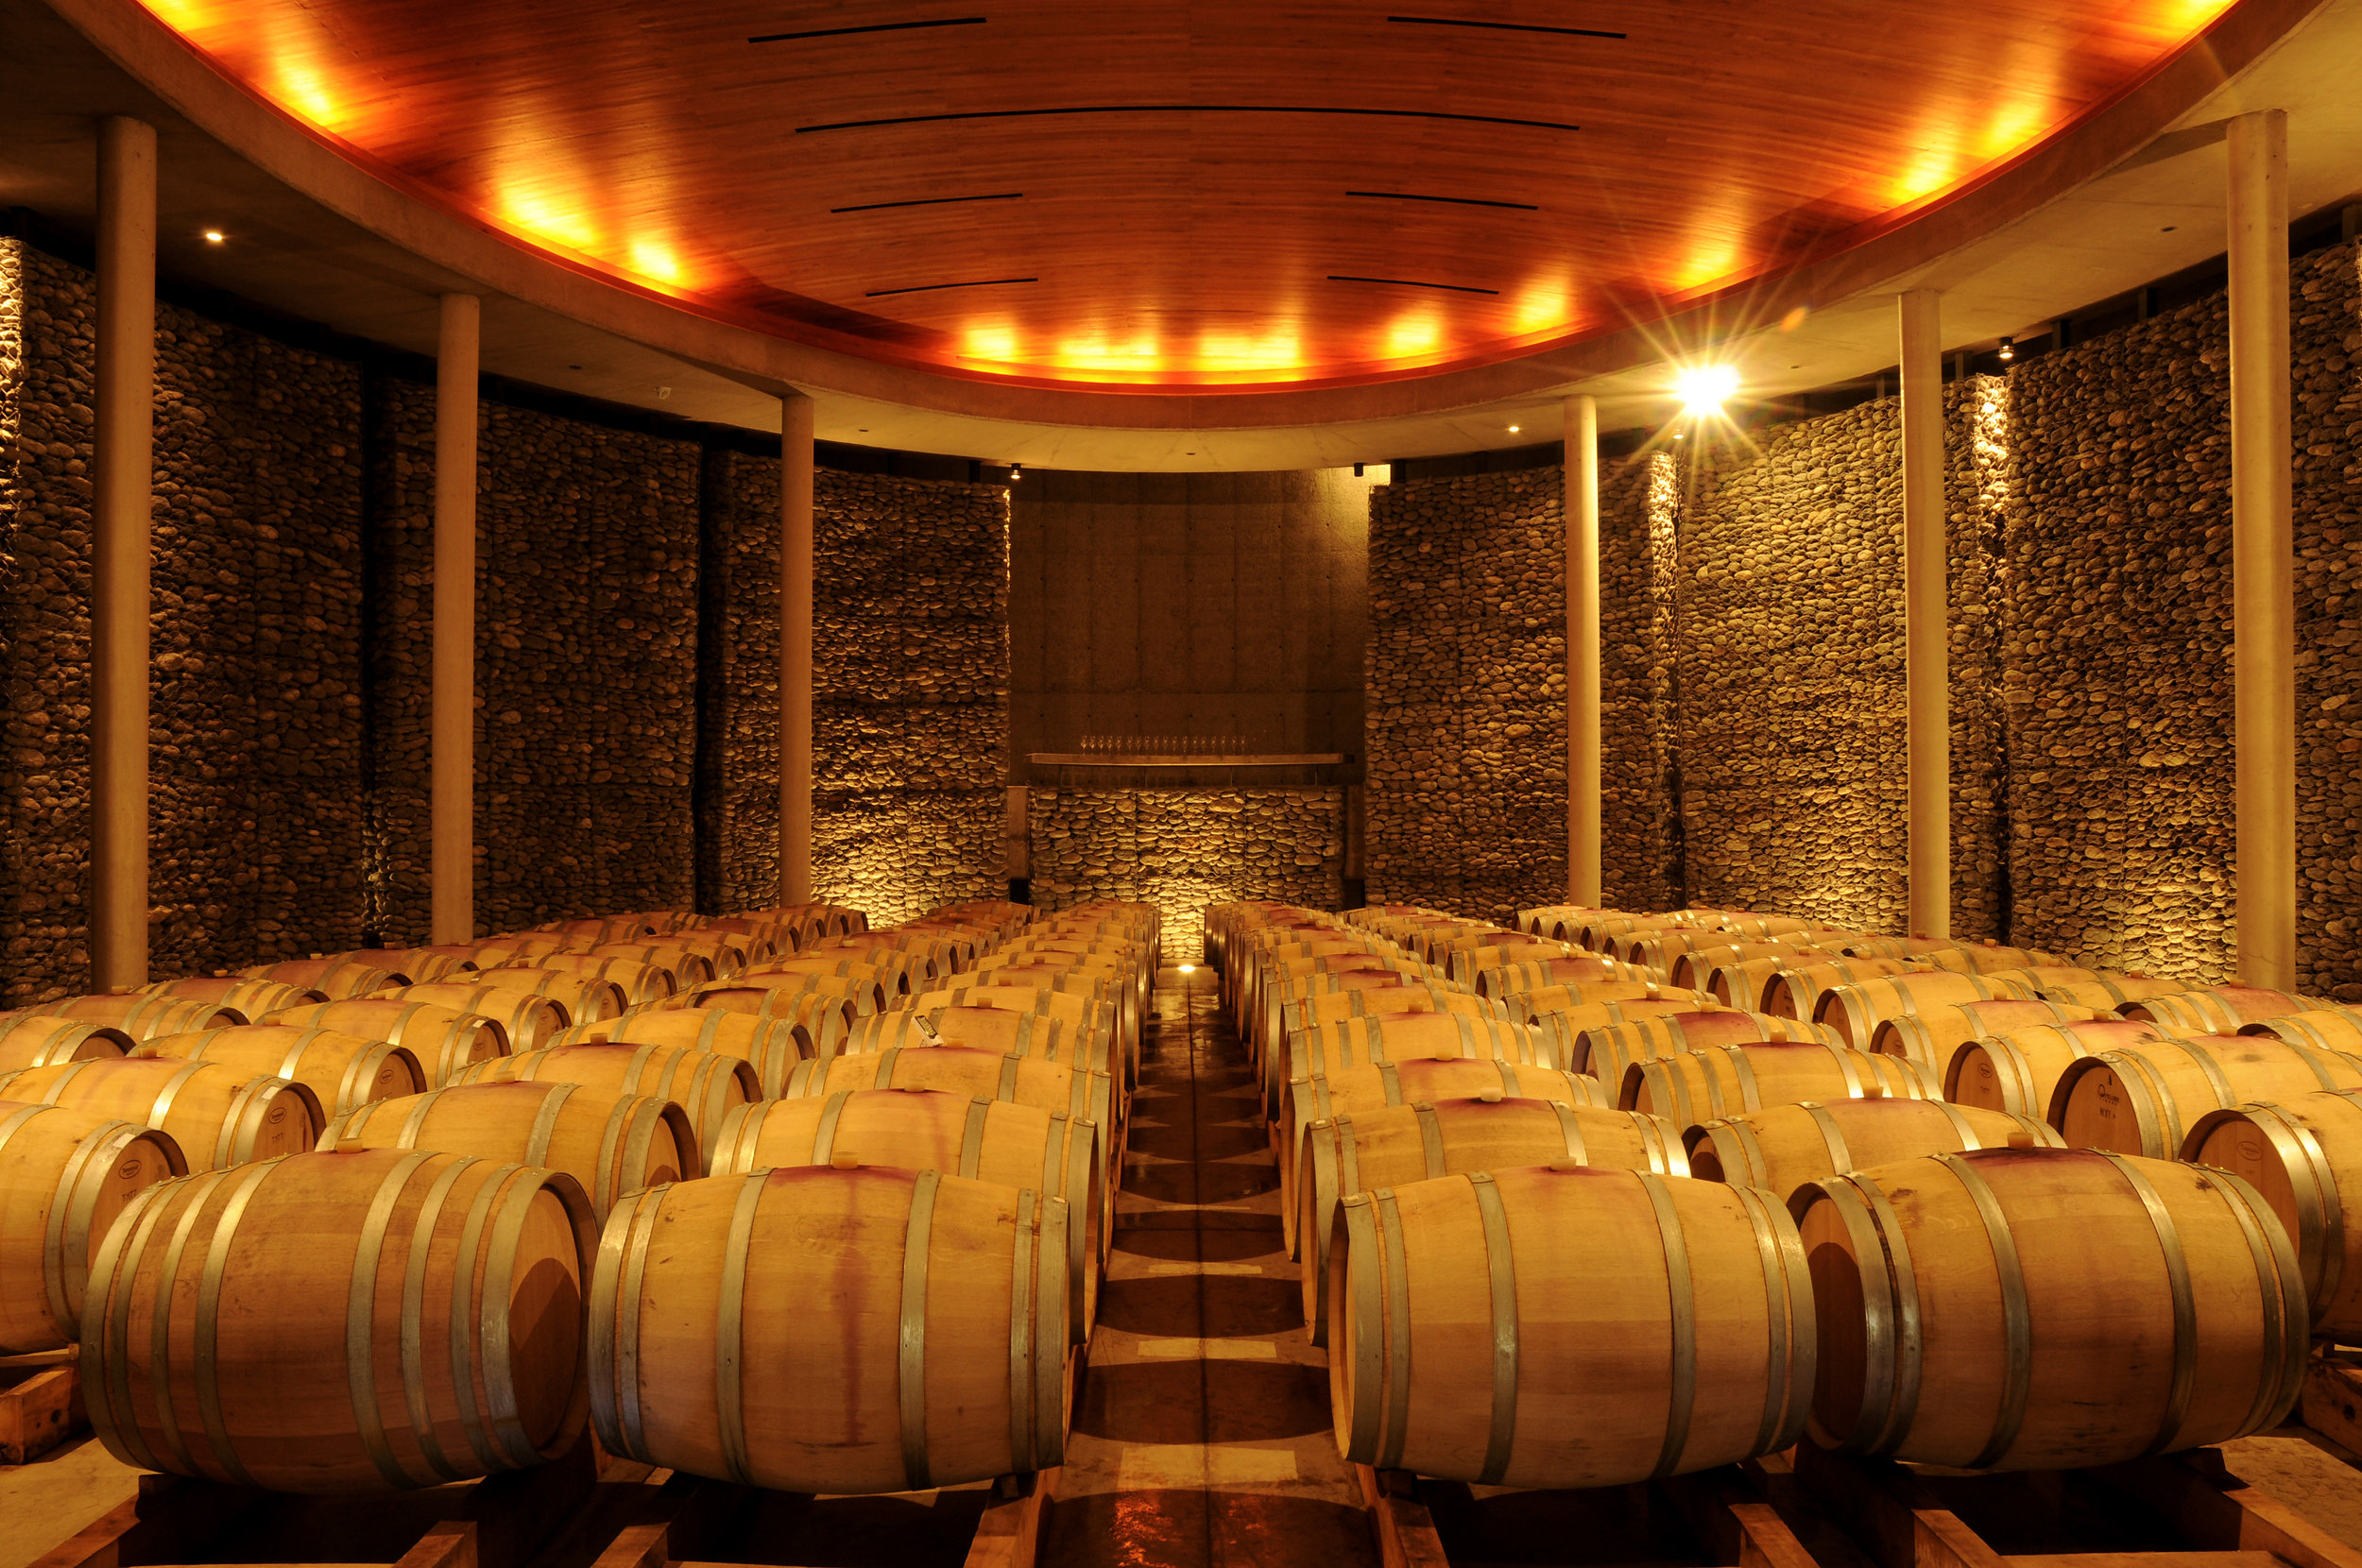 Bodega at Matetic Vineyards, Valle del Rosario, Chile